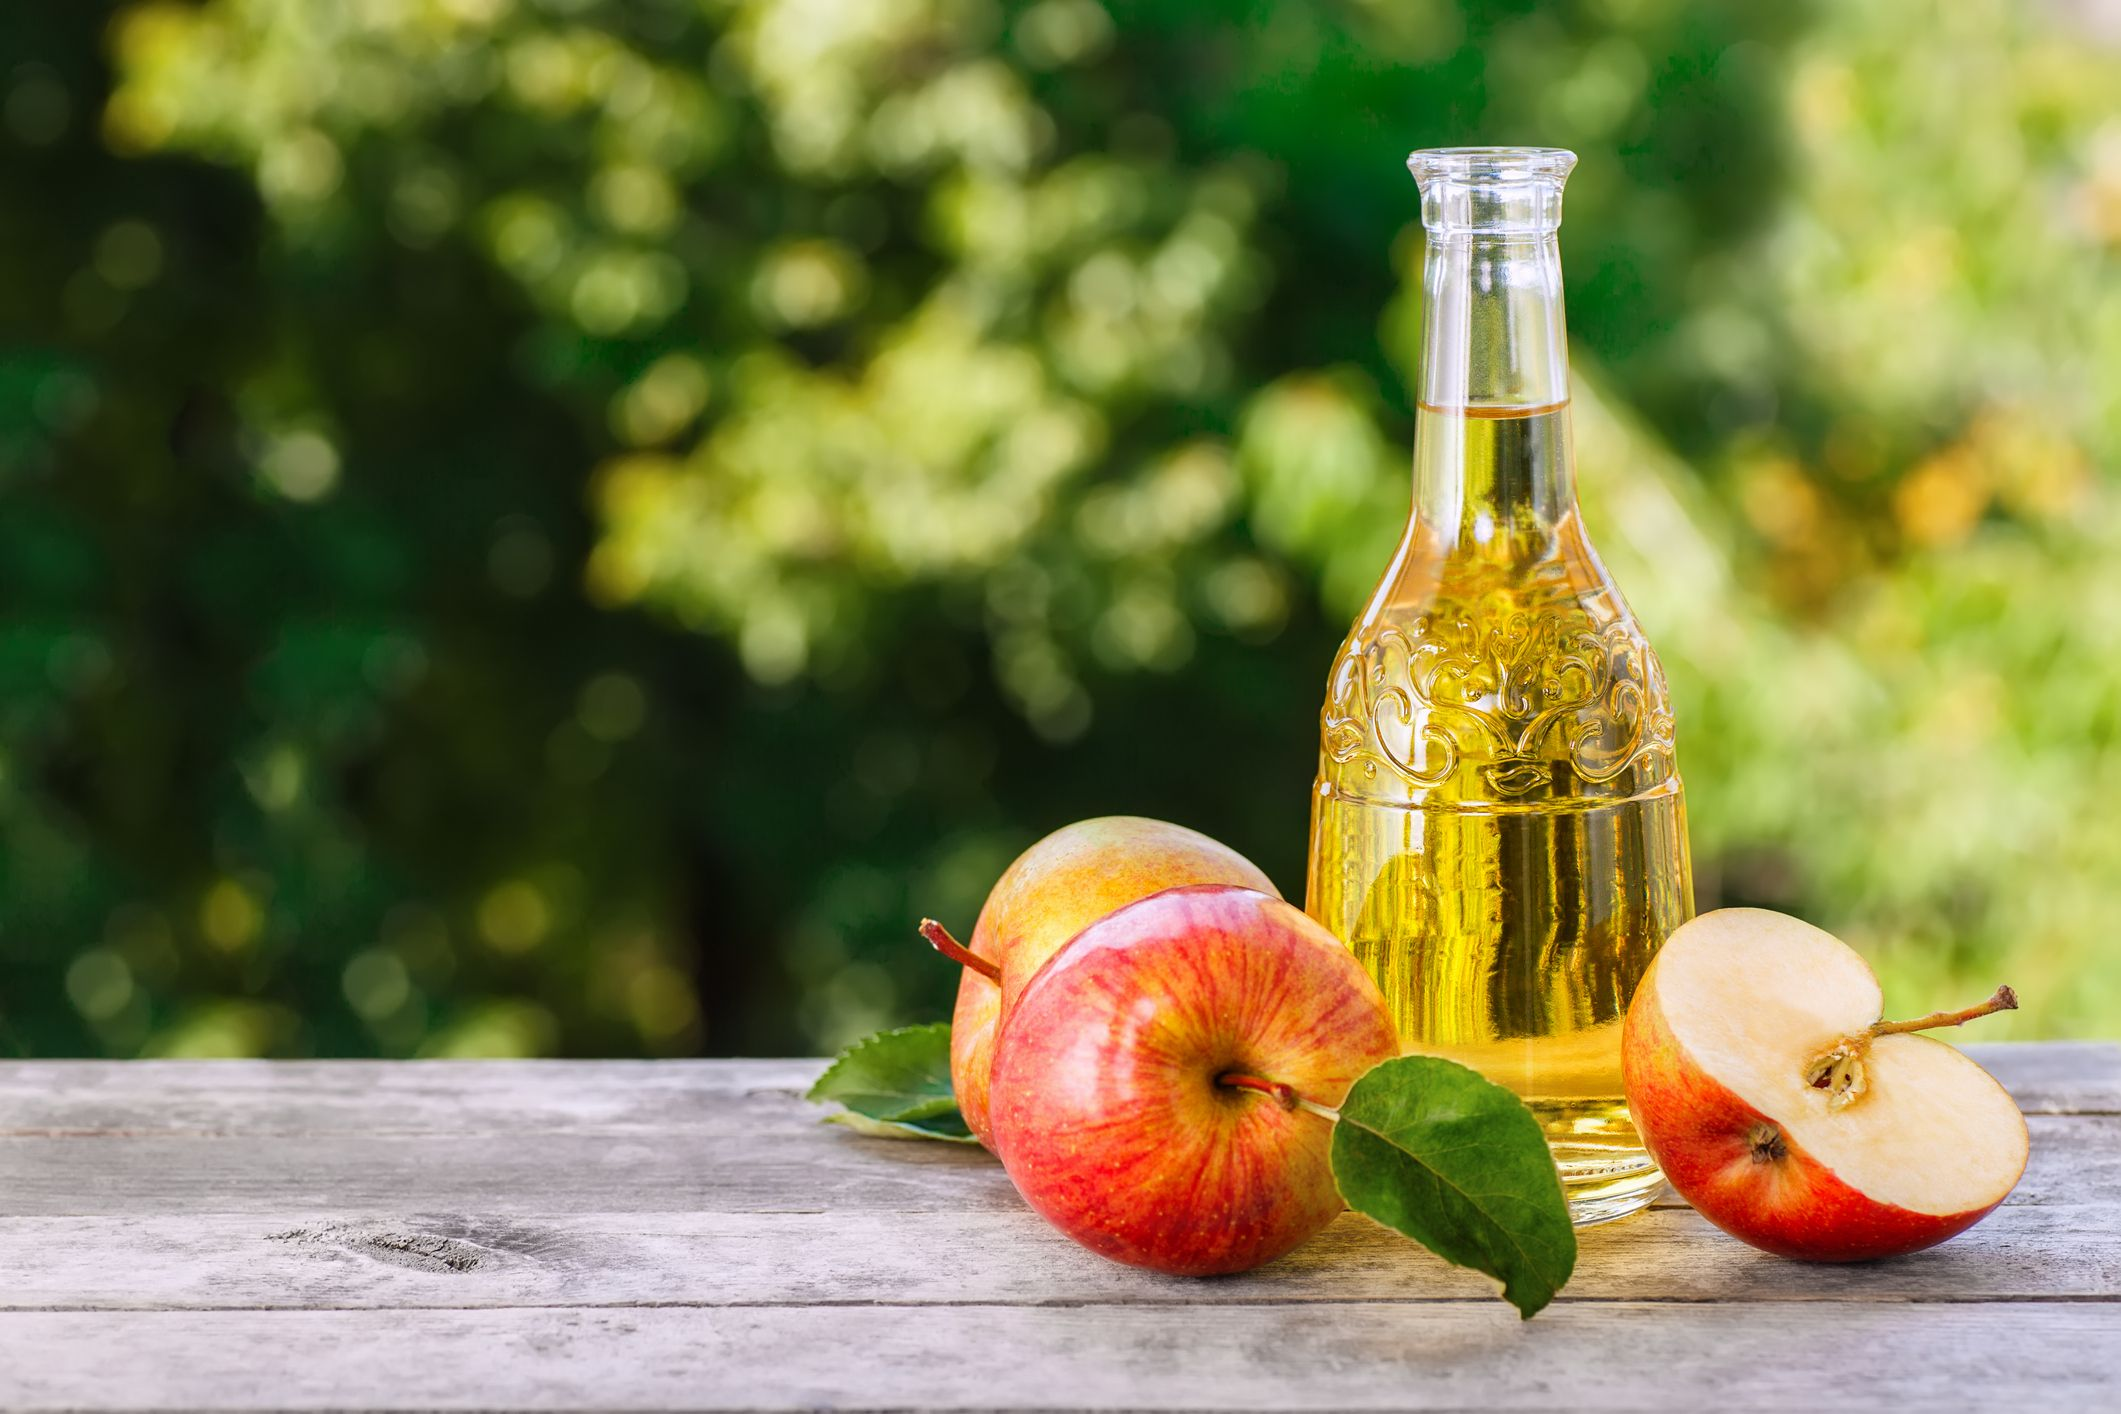 Can adding apple cider vinegar to your diet really help you lose weight?